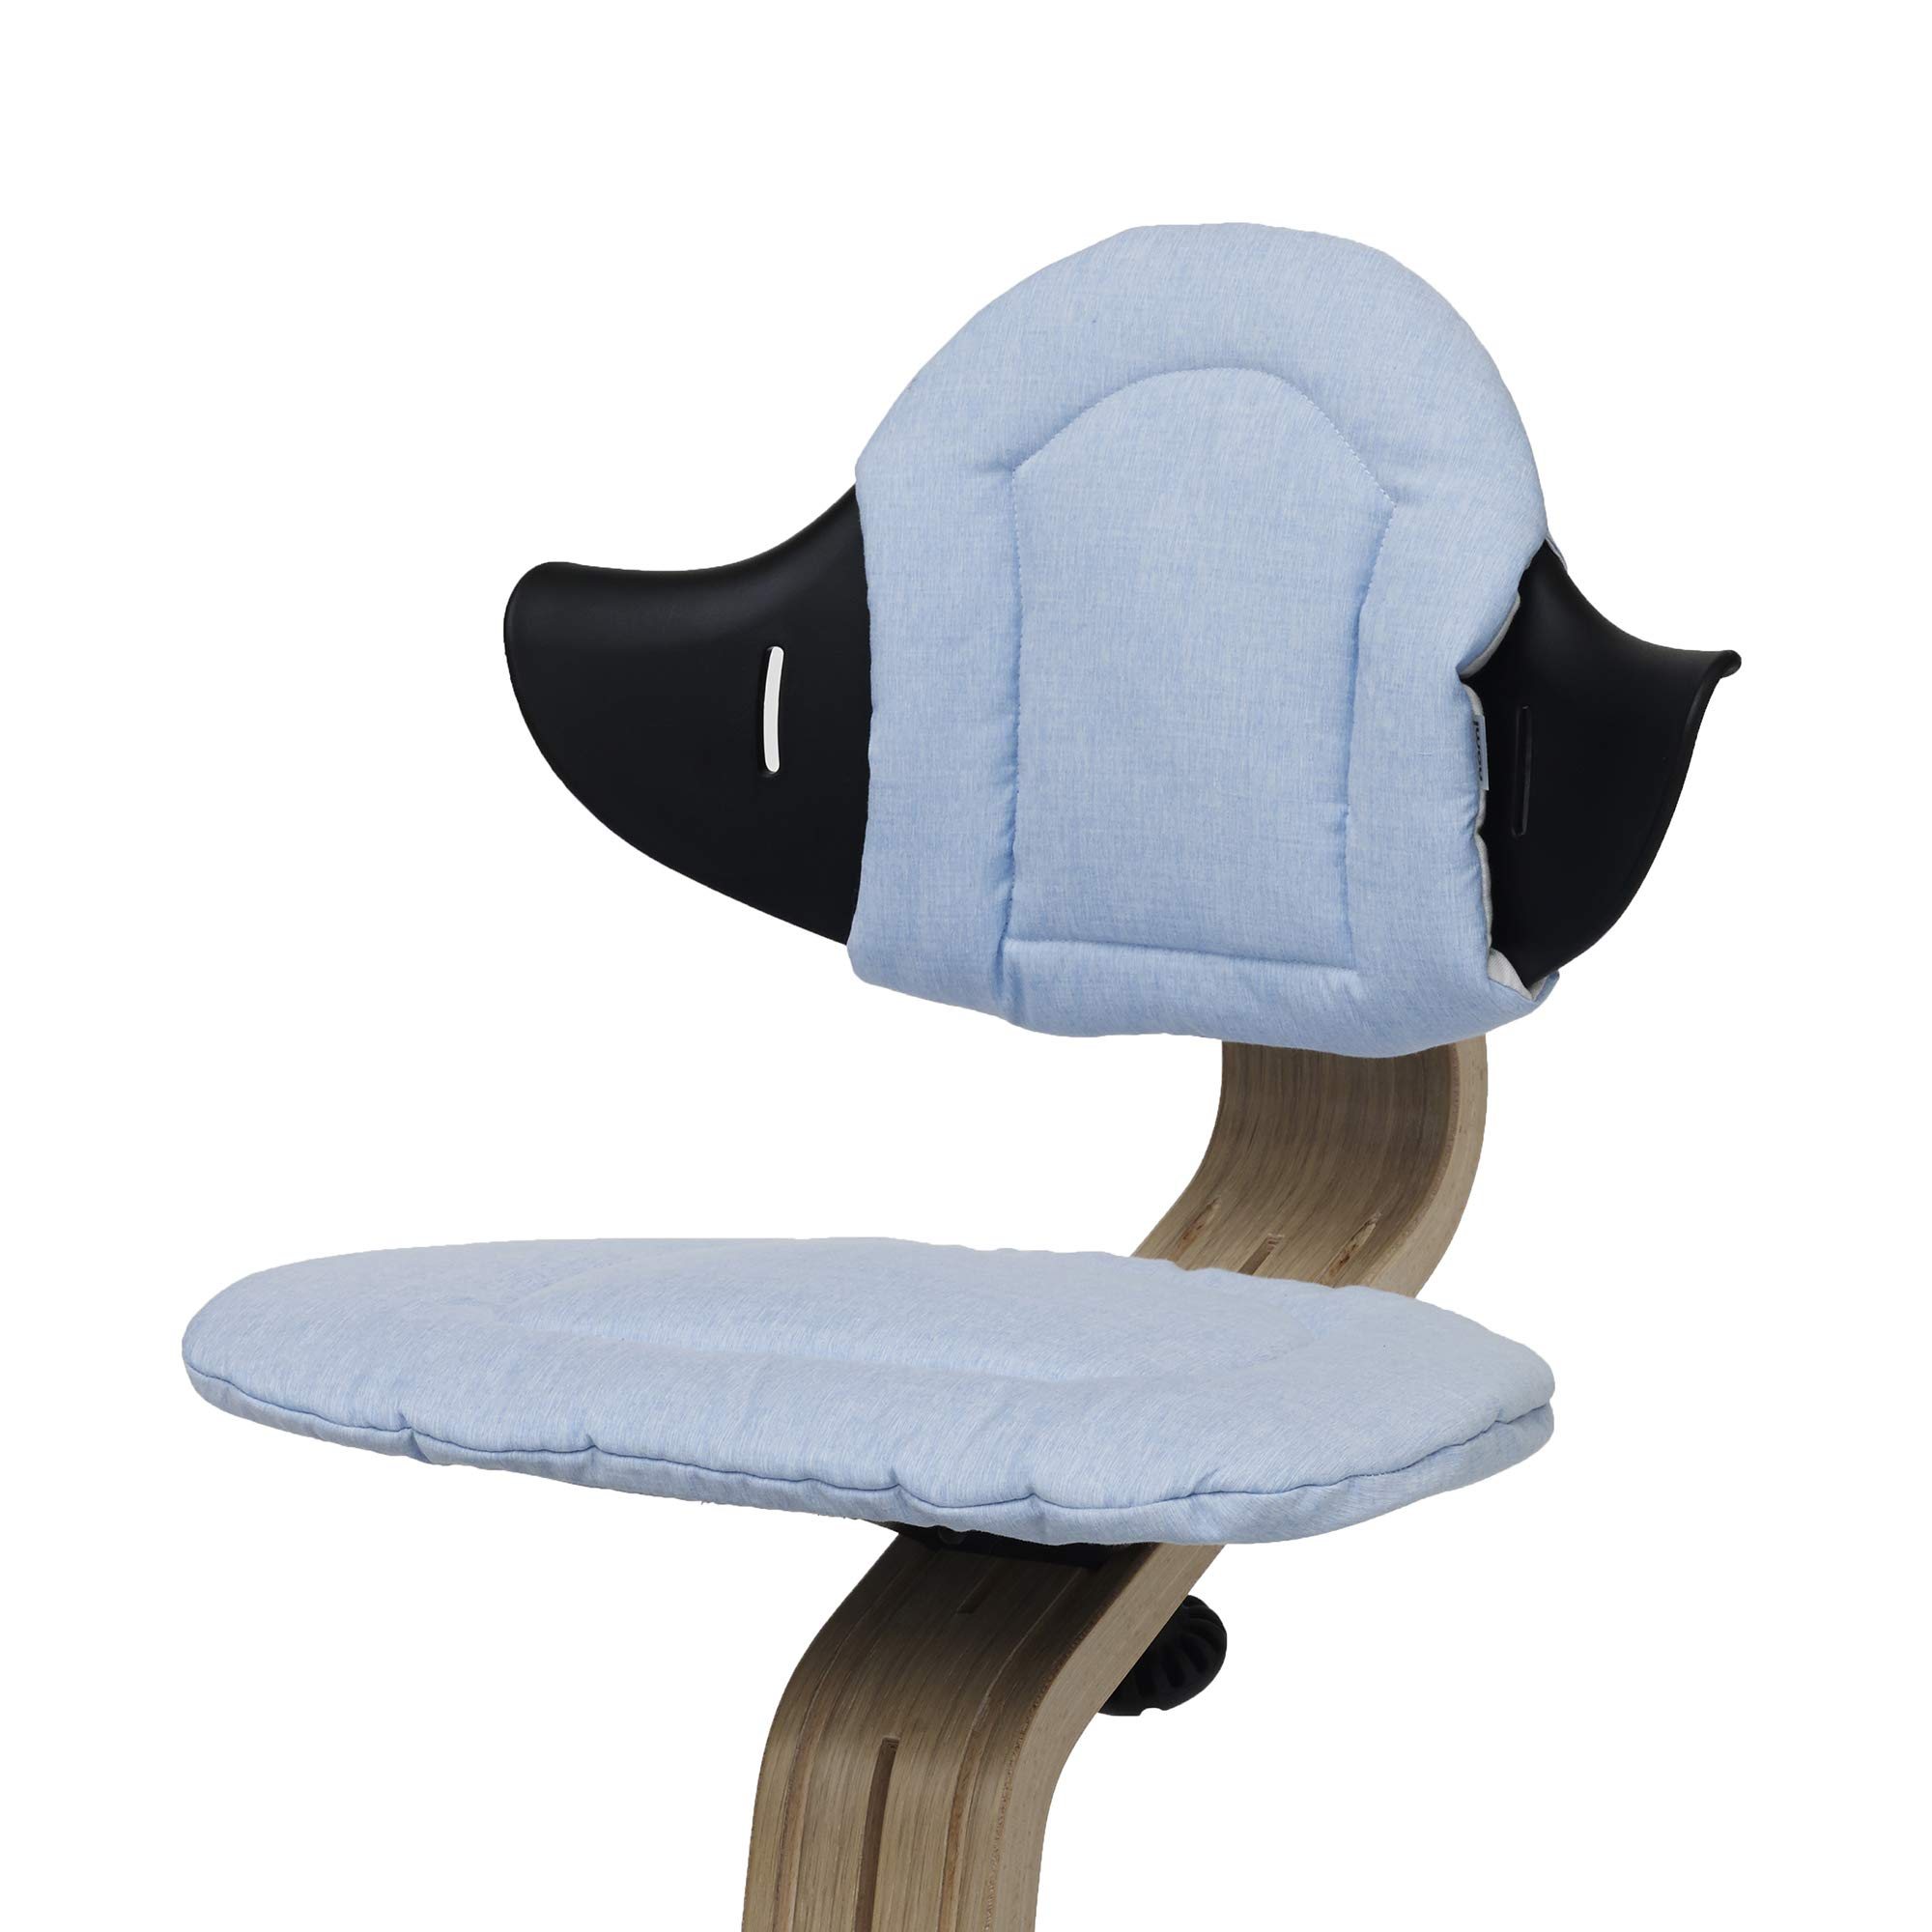 Nomi Cushion, Pale Blue, Accessory for use with The Award Winning Nomi High Chair and Nomi Chair